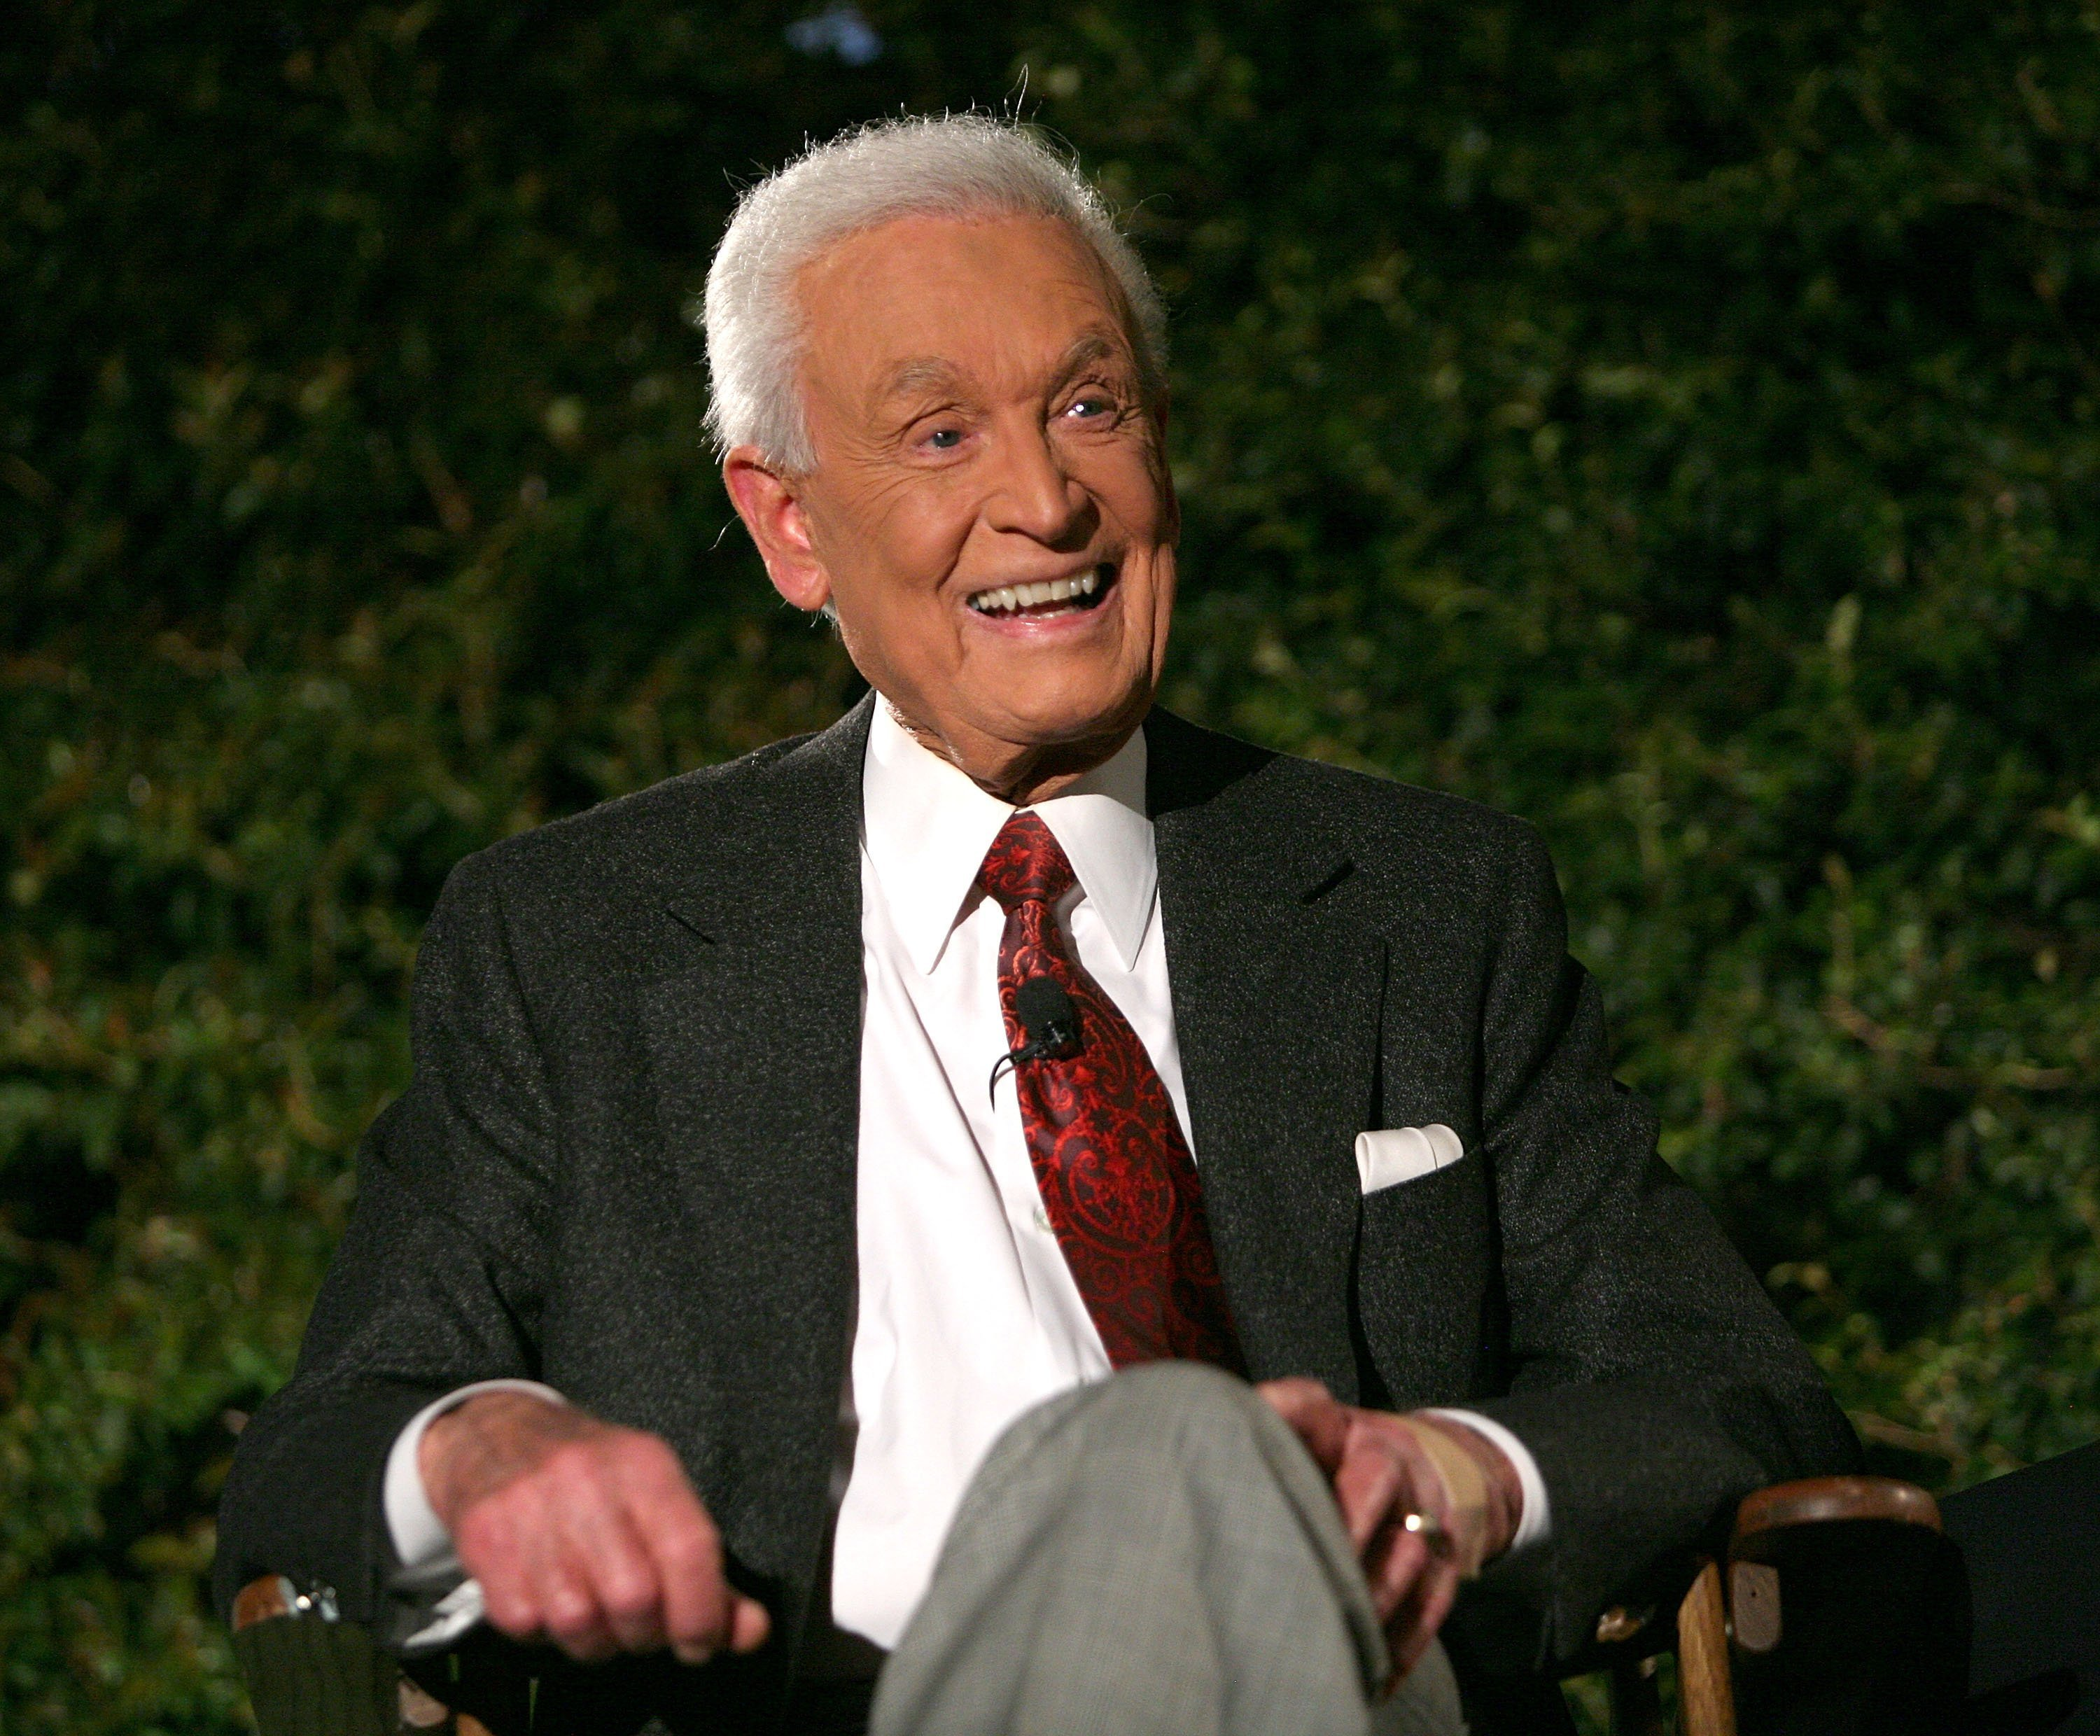 Bob Barker attends An Evening With Bob Barker at The Leonard Goldenson Theater May 7, 2007 | Photo: GettyImages